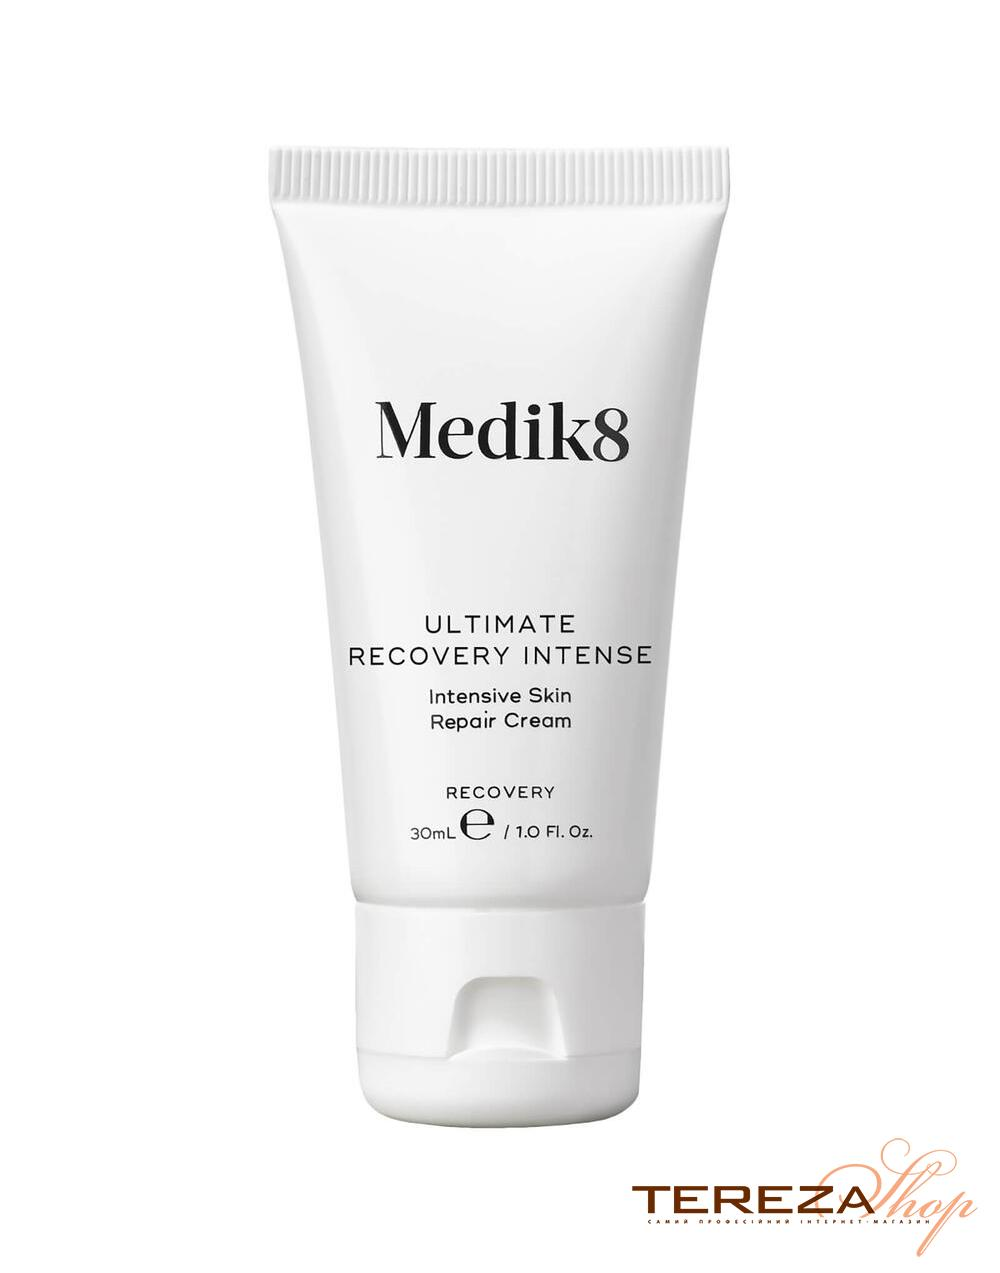 ULTIMATE RECOVERY INTENSE MEDIK8 | Tereza Shop